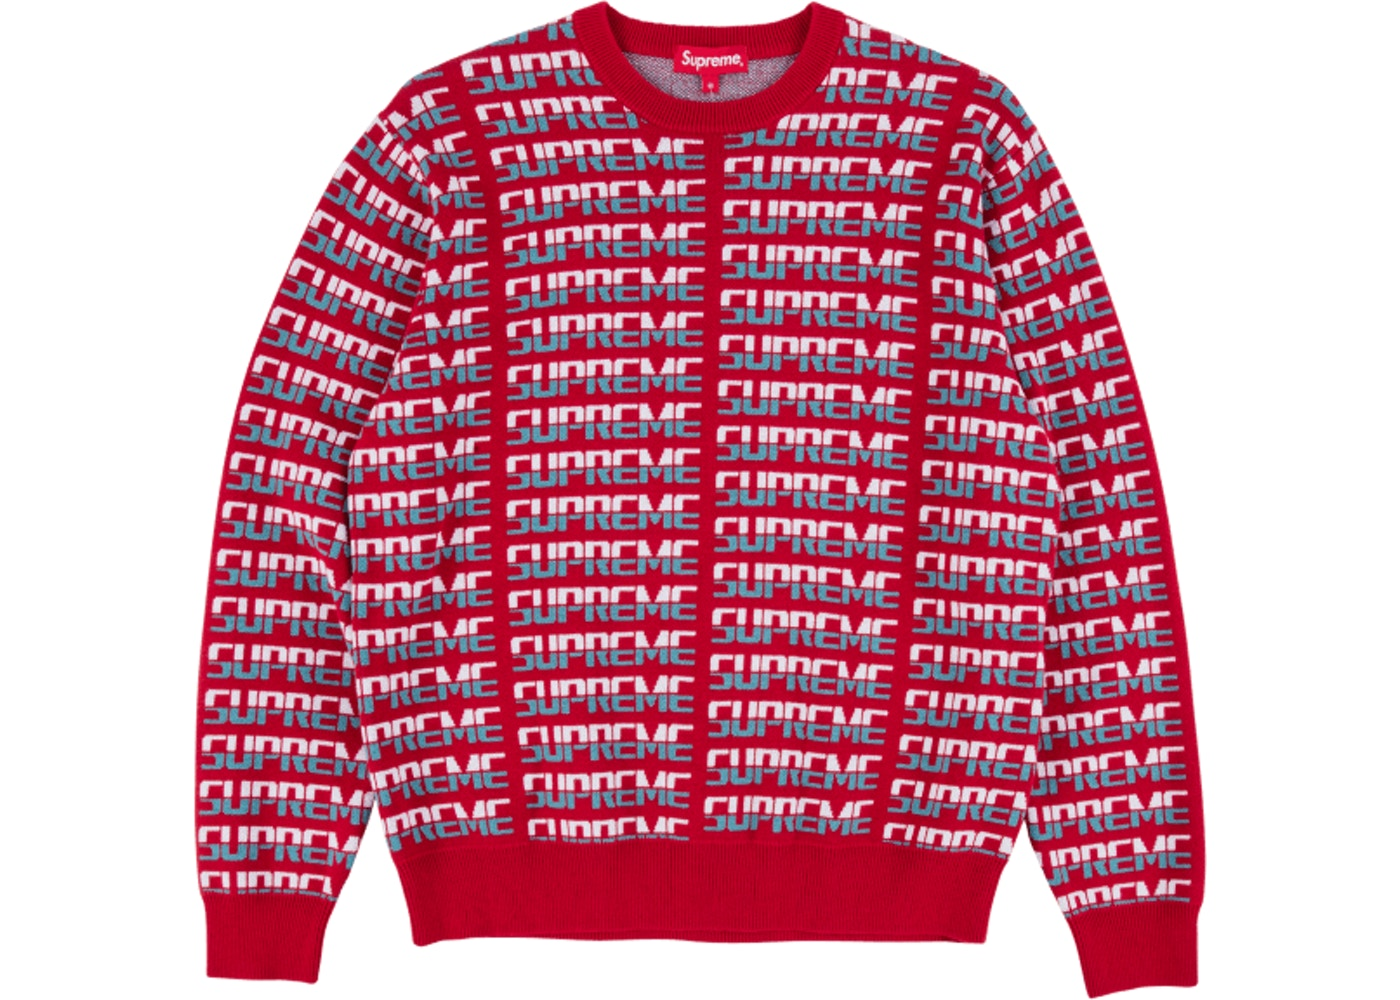 8bcd1006628c Supreme Repeat Sweater Red - FW17